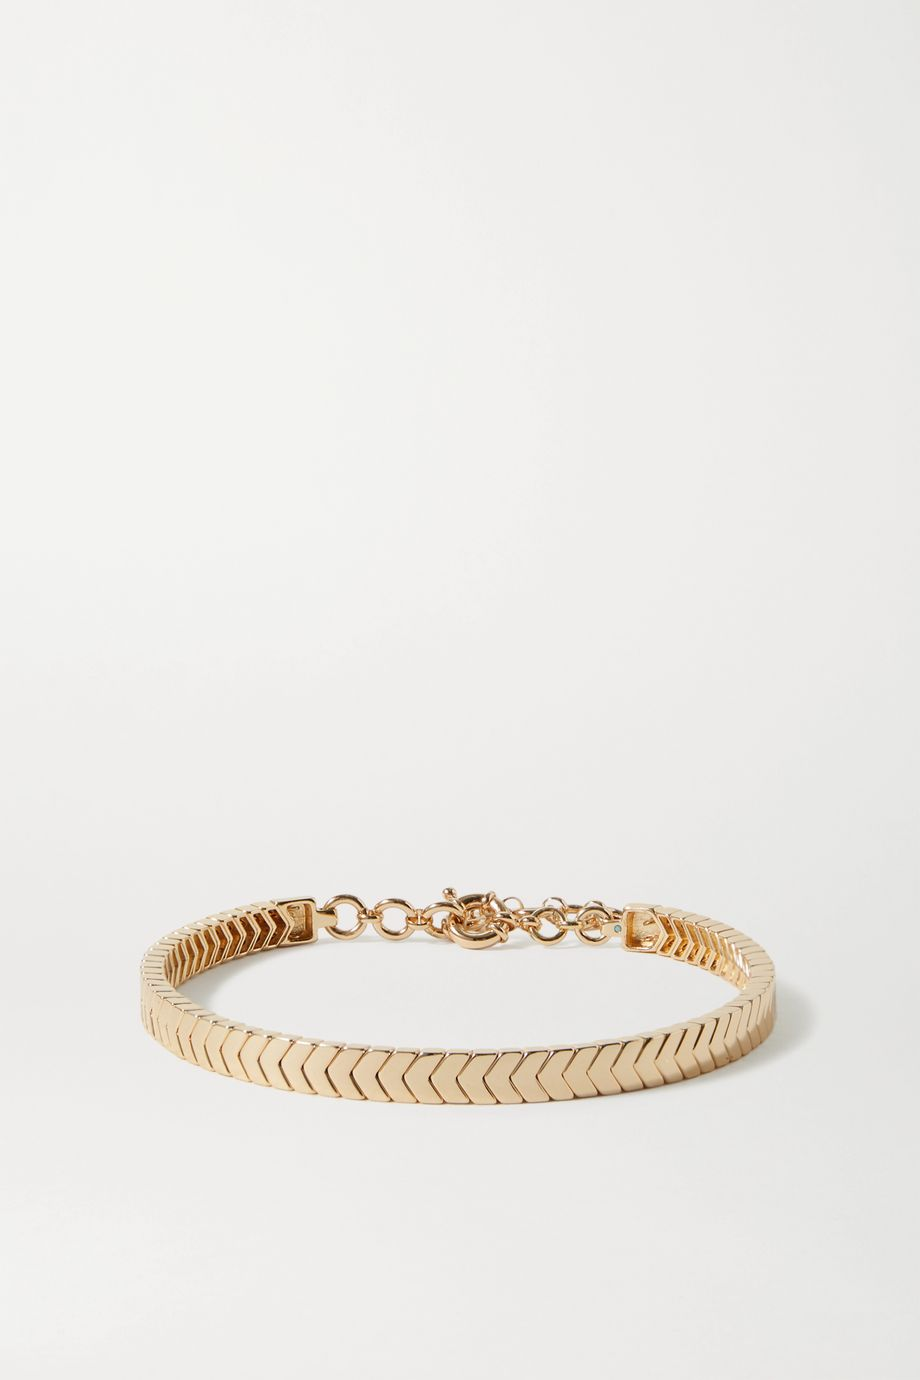 Roxanne Assoulin The Mixer gold-tone choker